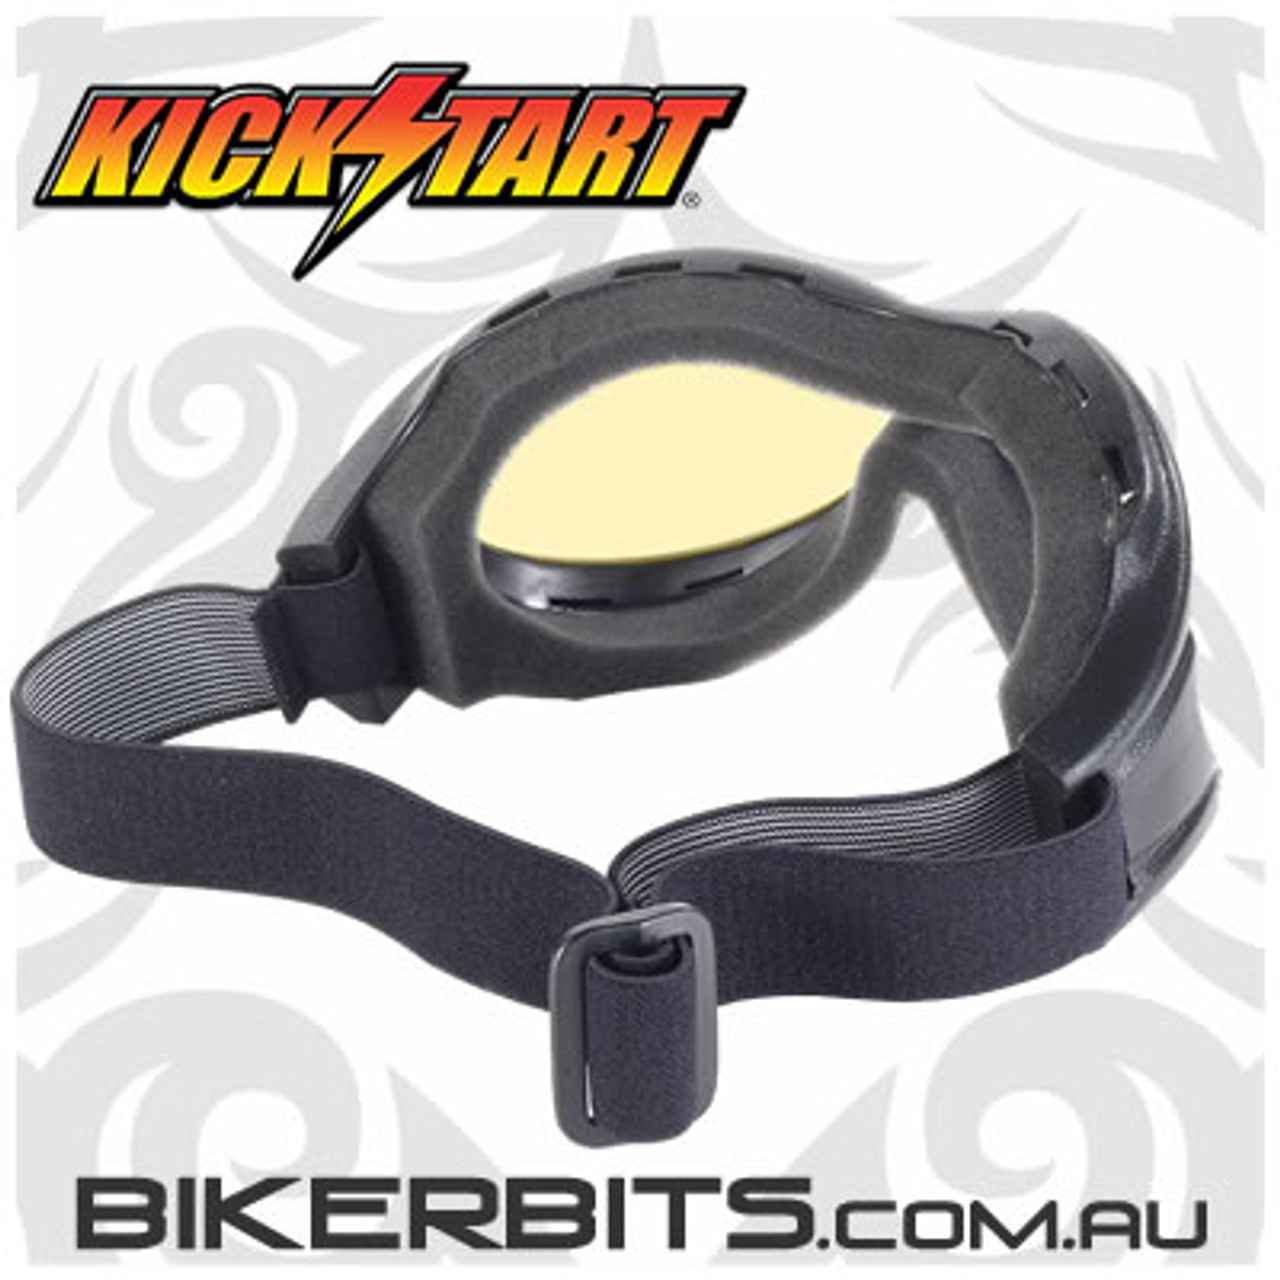 Motorcycle Goggles - Kickstart Beast- Yellow/Black